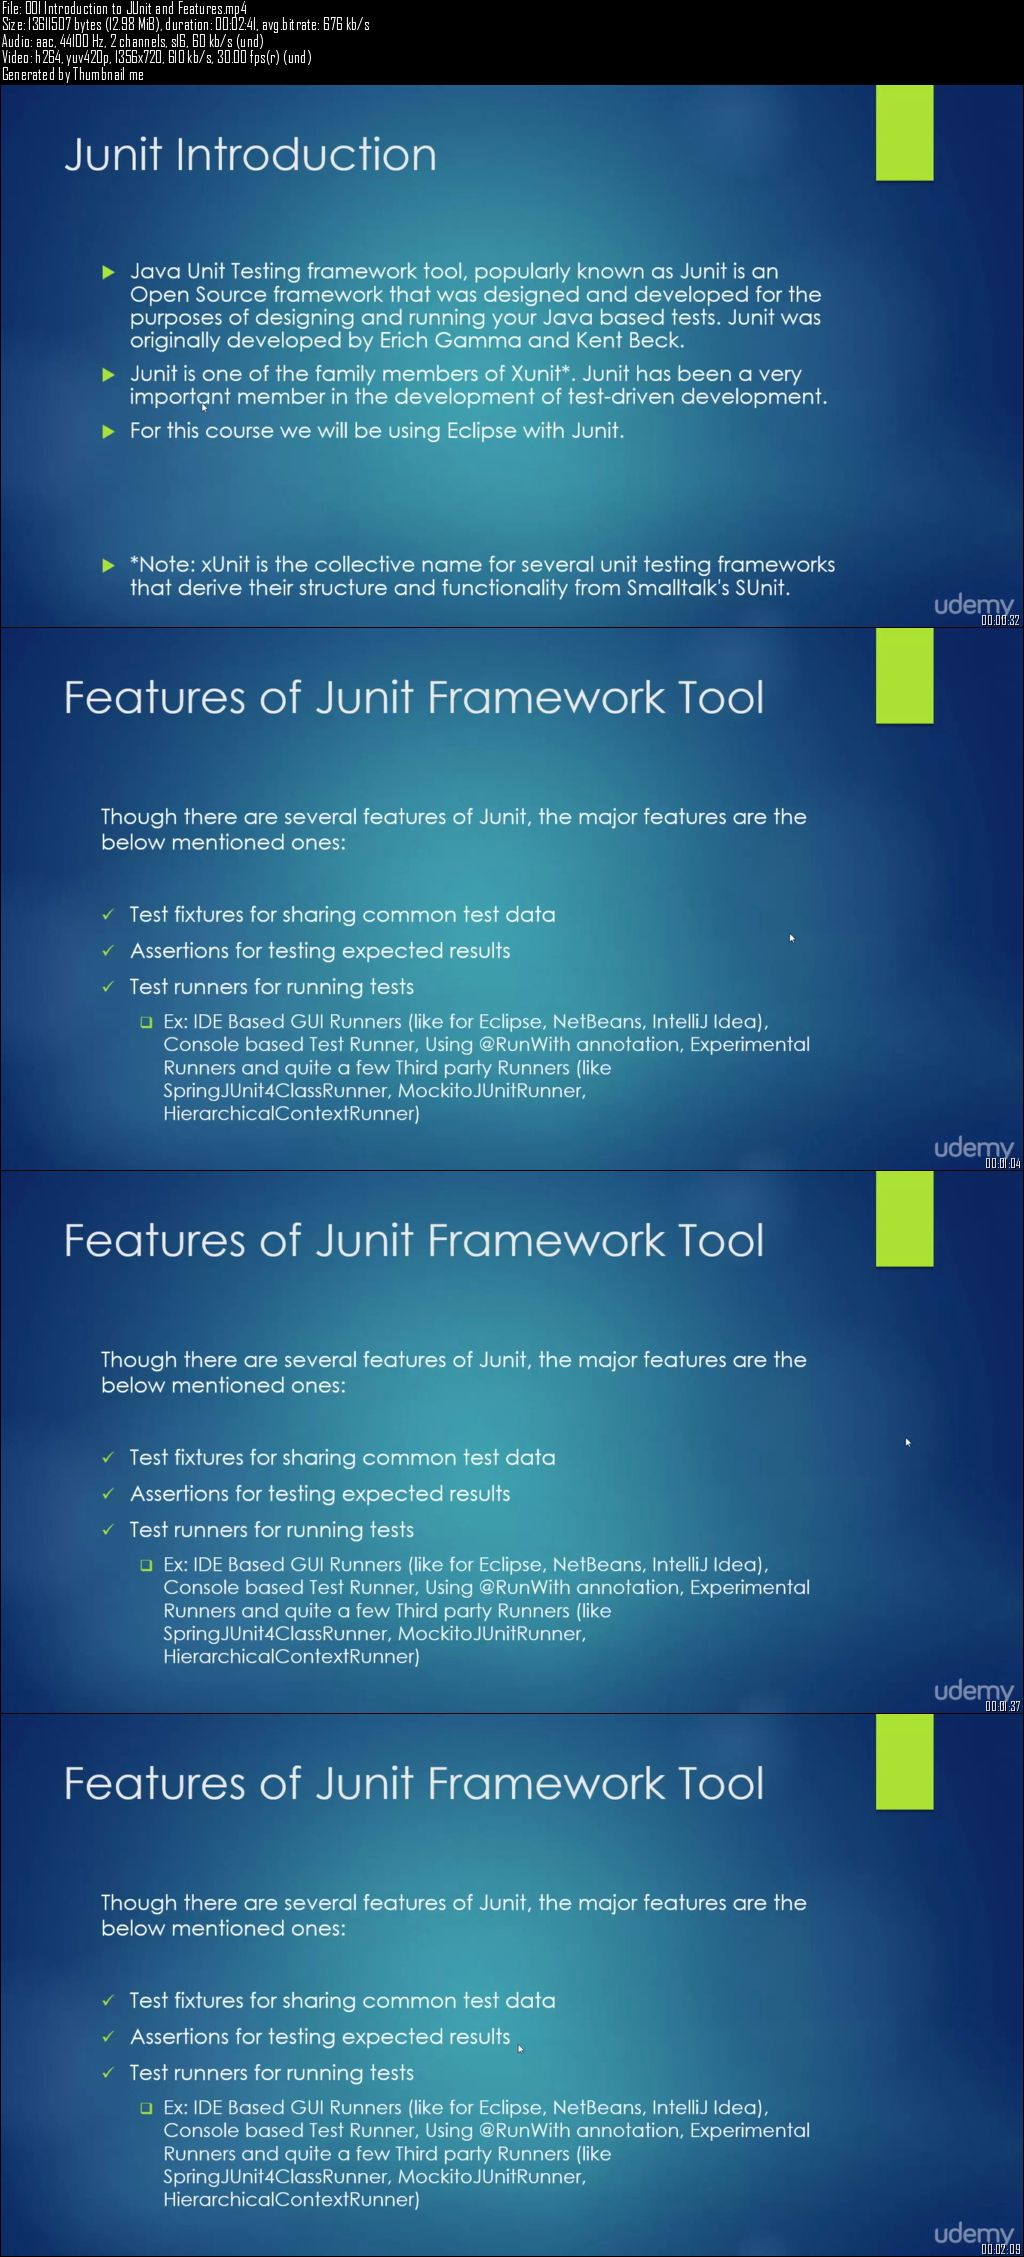 Basics of JUnit Framework